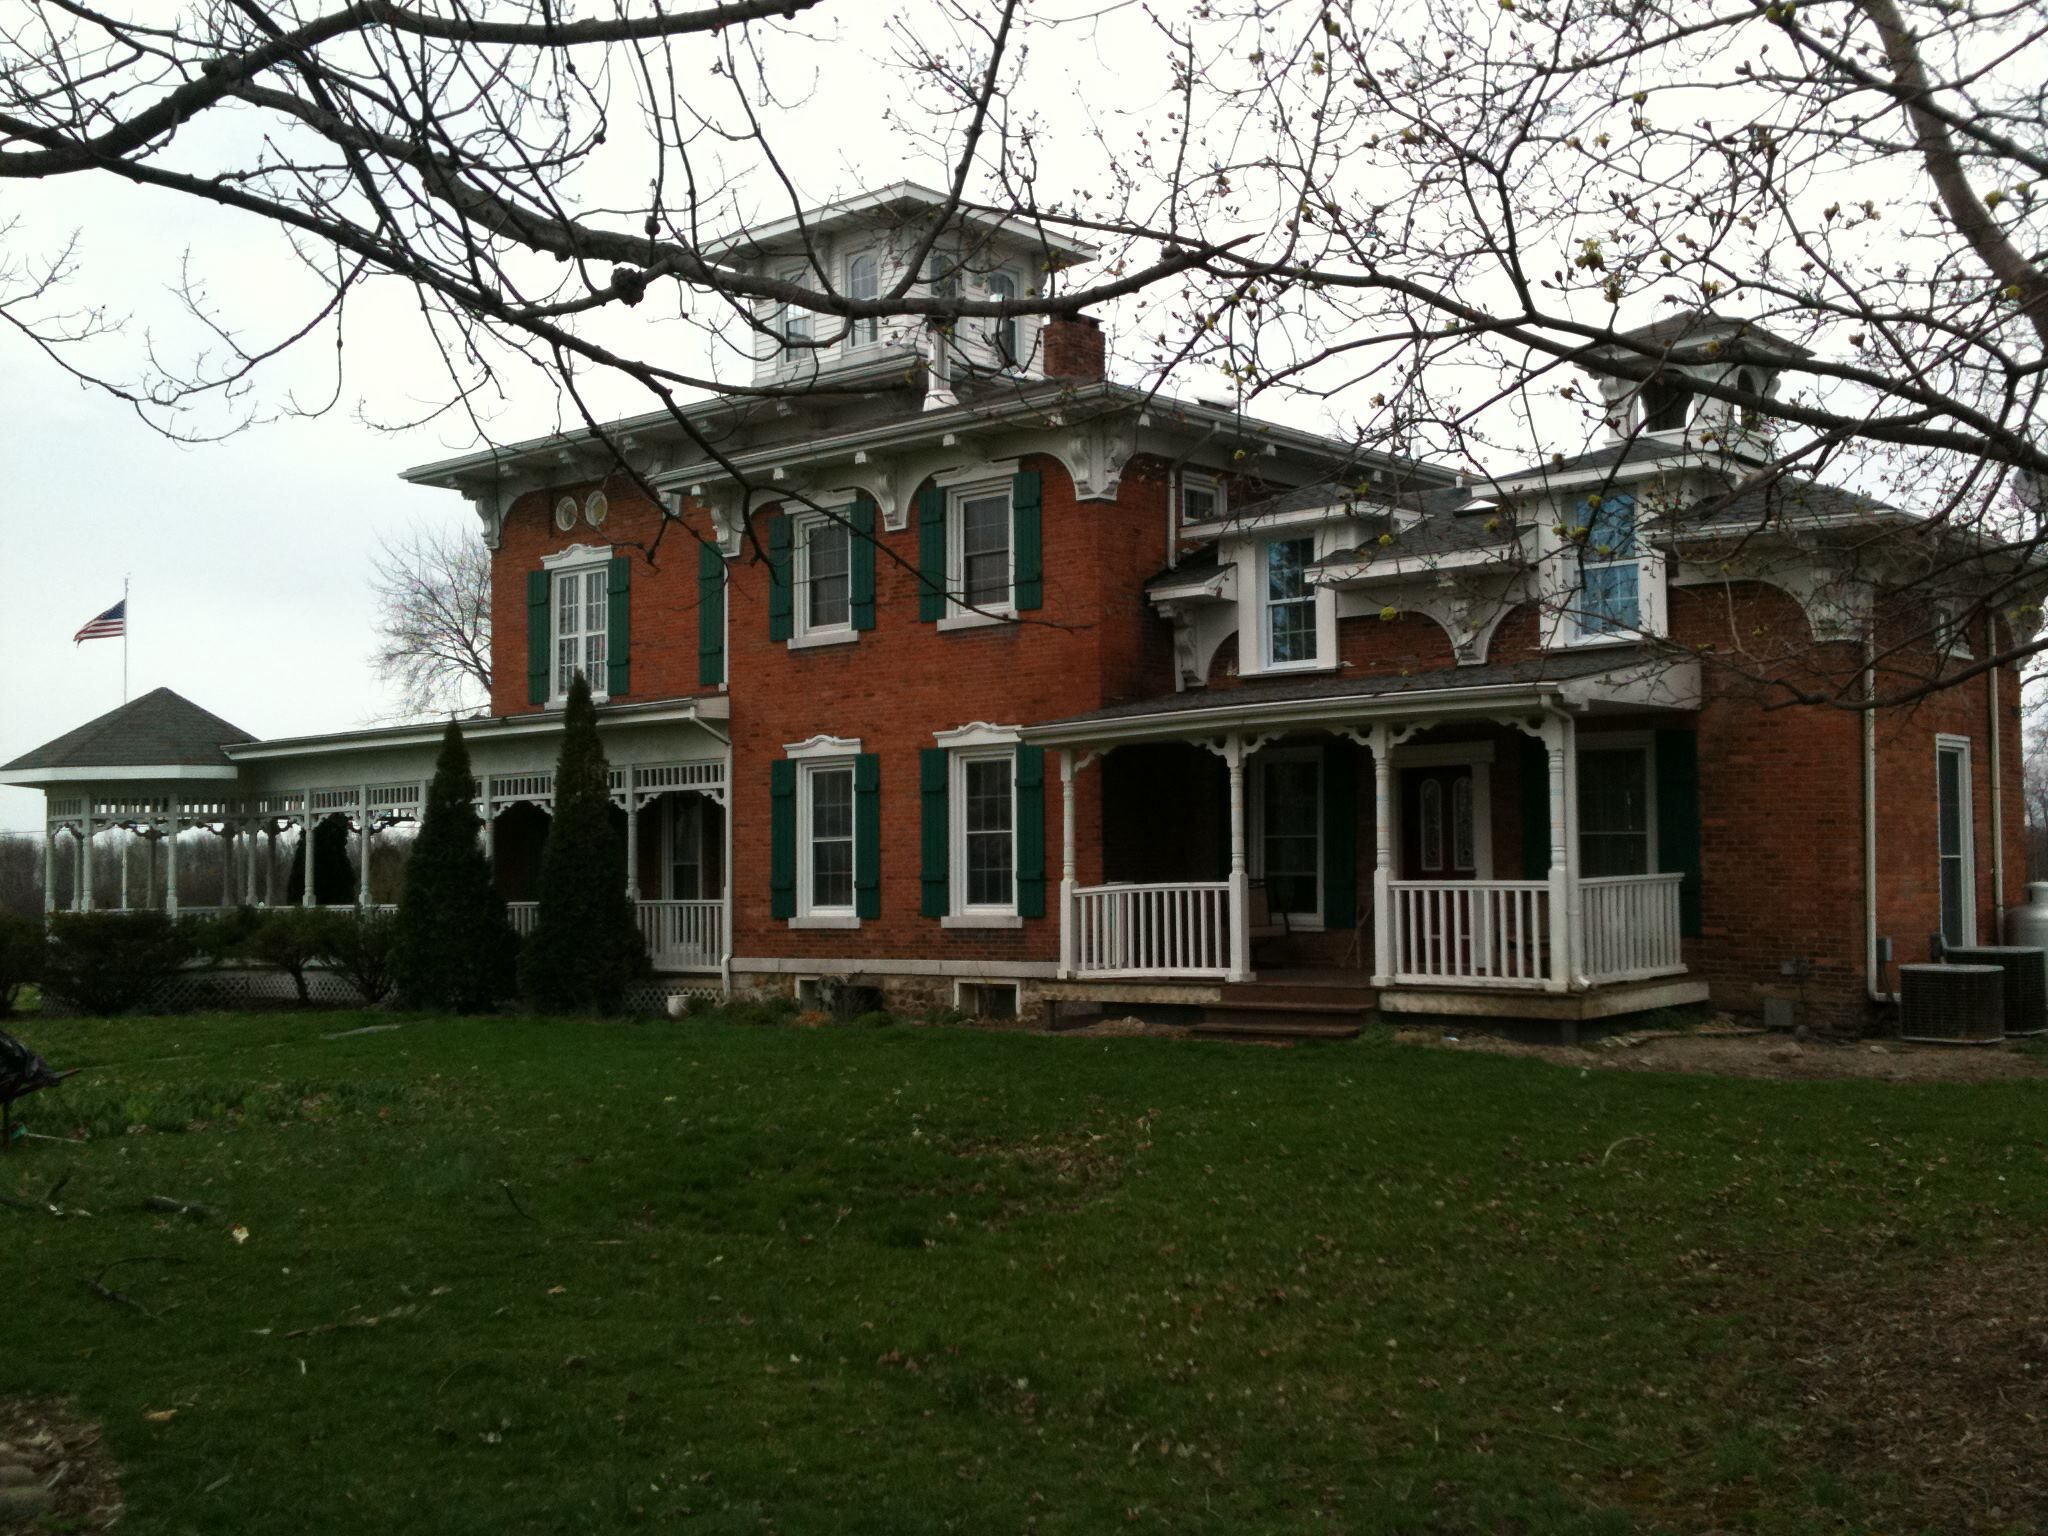 Woodruff Manor Bed and Breakfast is an Italianate style